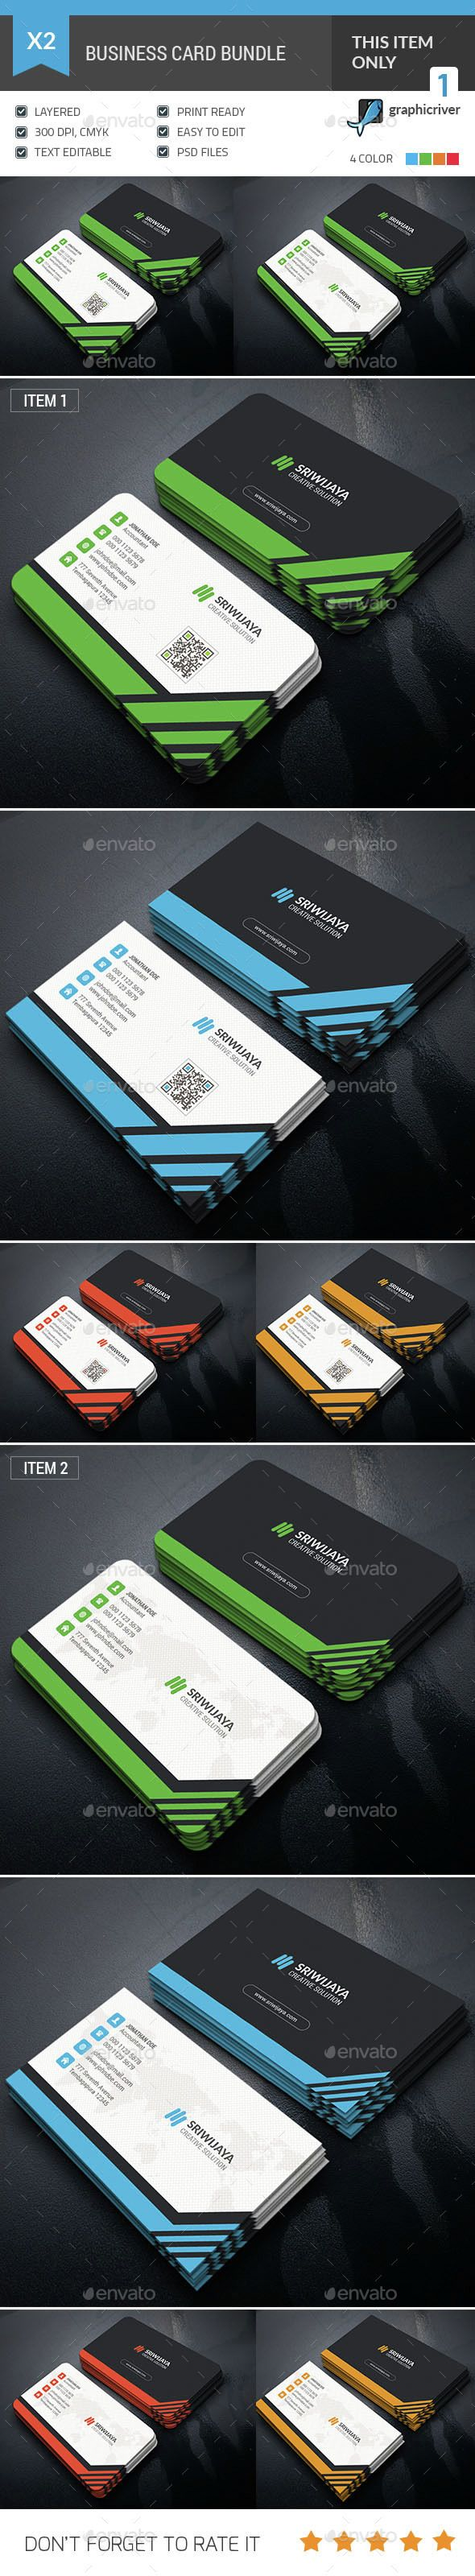 Business Card Bundle — Photoshop PSD #stylish #colorful • Available here → https://graphicriver.net/item/business-card-bundle/14958321?ref=pxcr